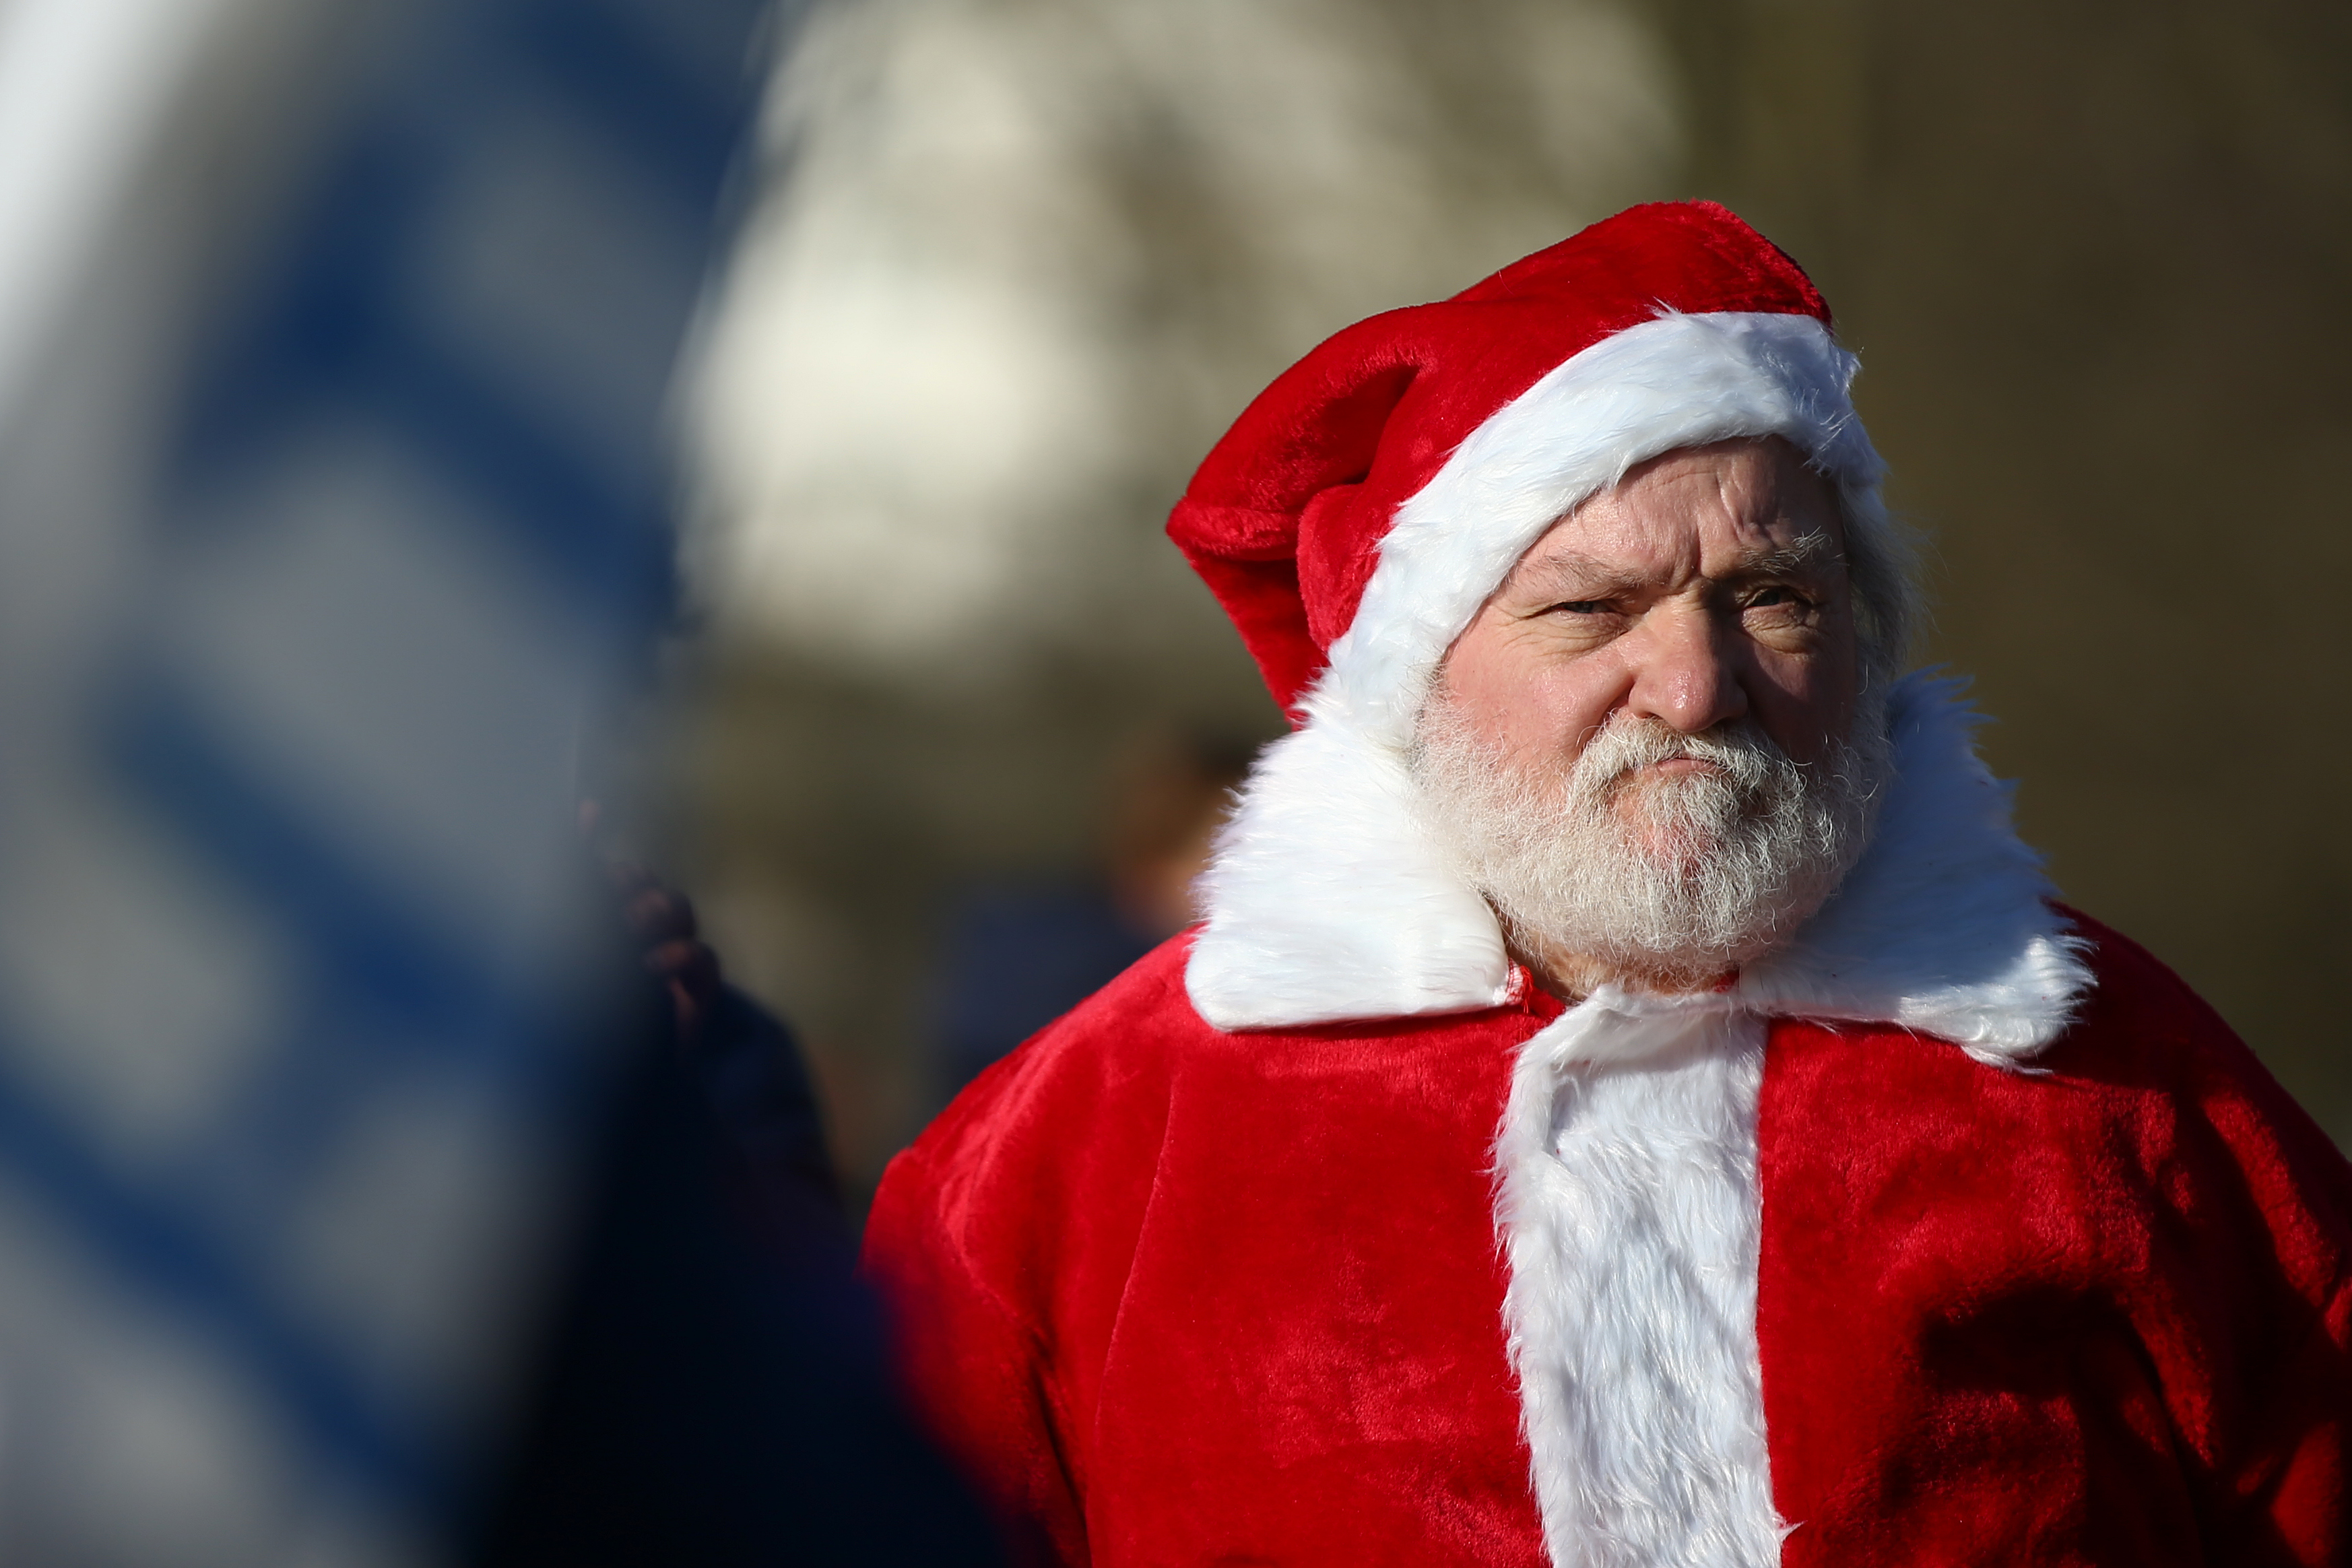 LONDON, ENGLAND - DECEMBER 05: A man dressed as Santa Claus attends a demonstration against the current Covid-19 restrictions in Hyde Park on December 5, 2020 in London, England. London has been in Tier 2 restrictions since the lockdown ended on December 2. (Photo by Hollie Adams/Getty Images)